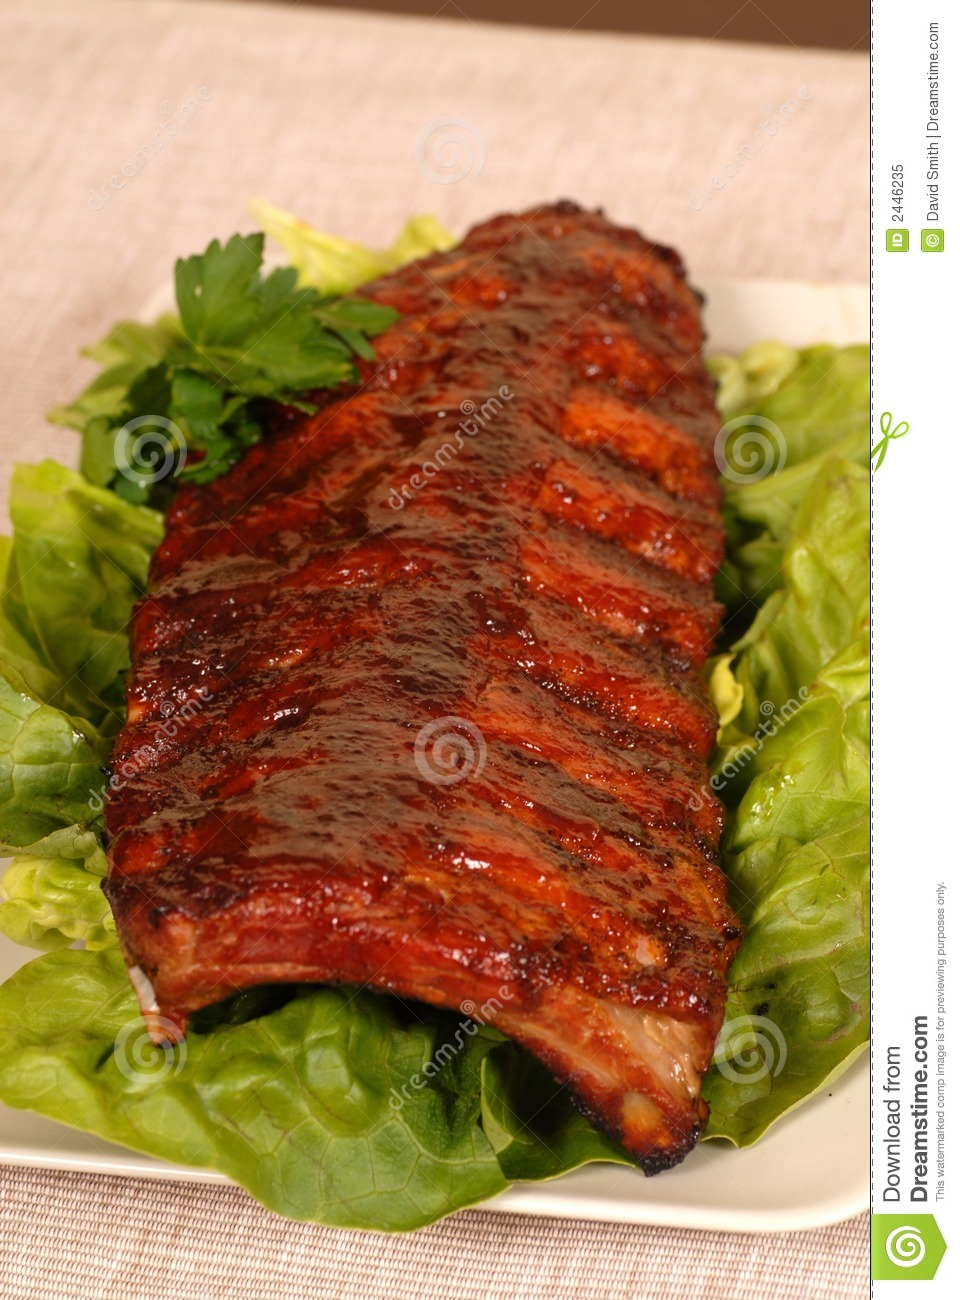 how to cook a slab of ribs